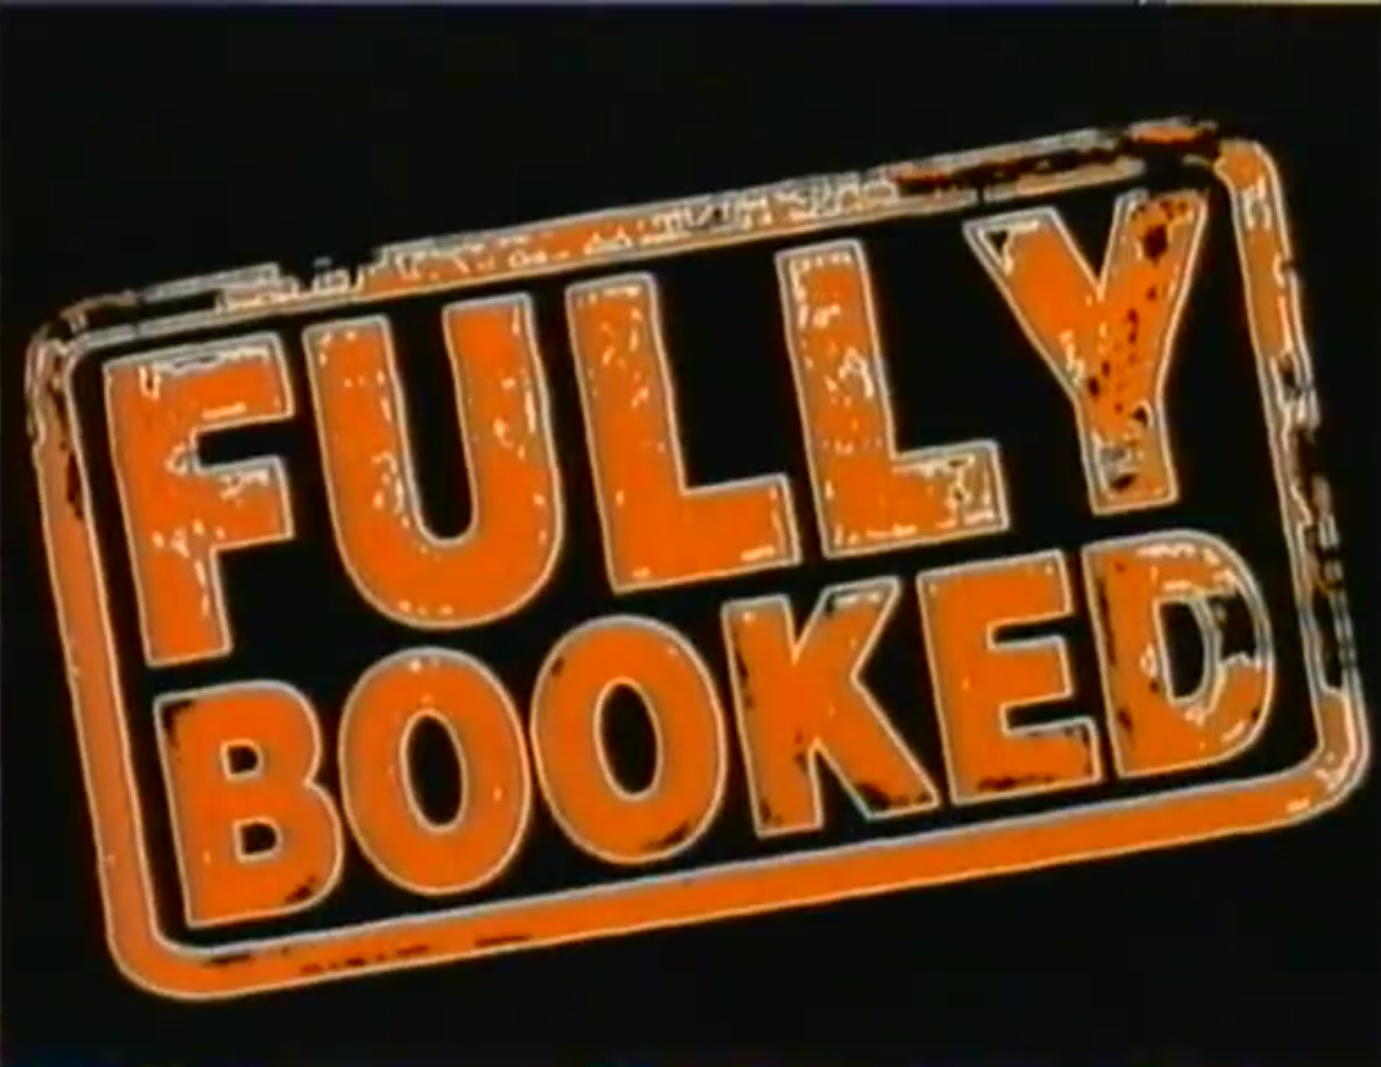 Fully Booked (TV show)